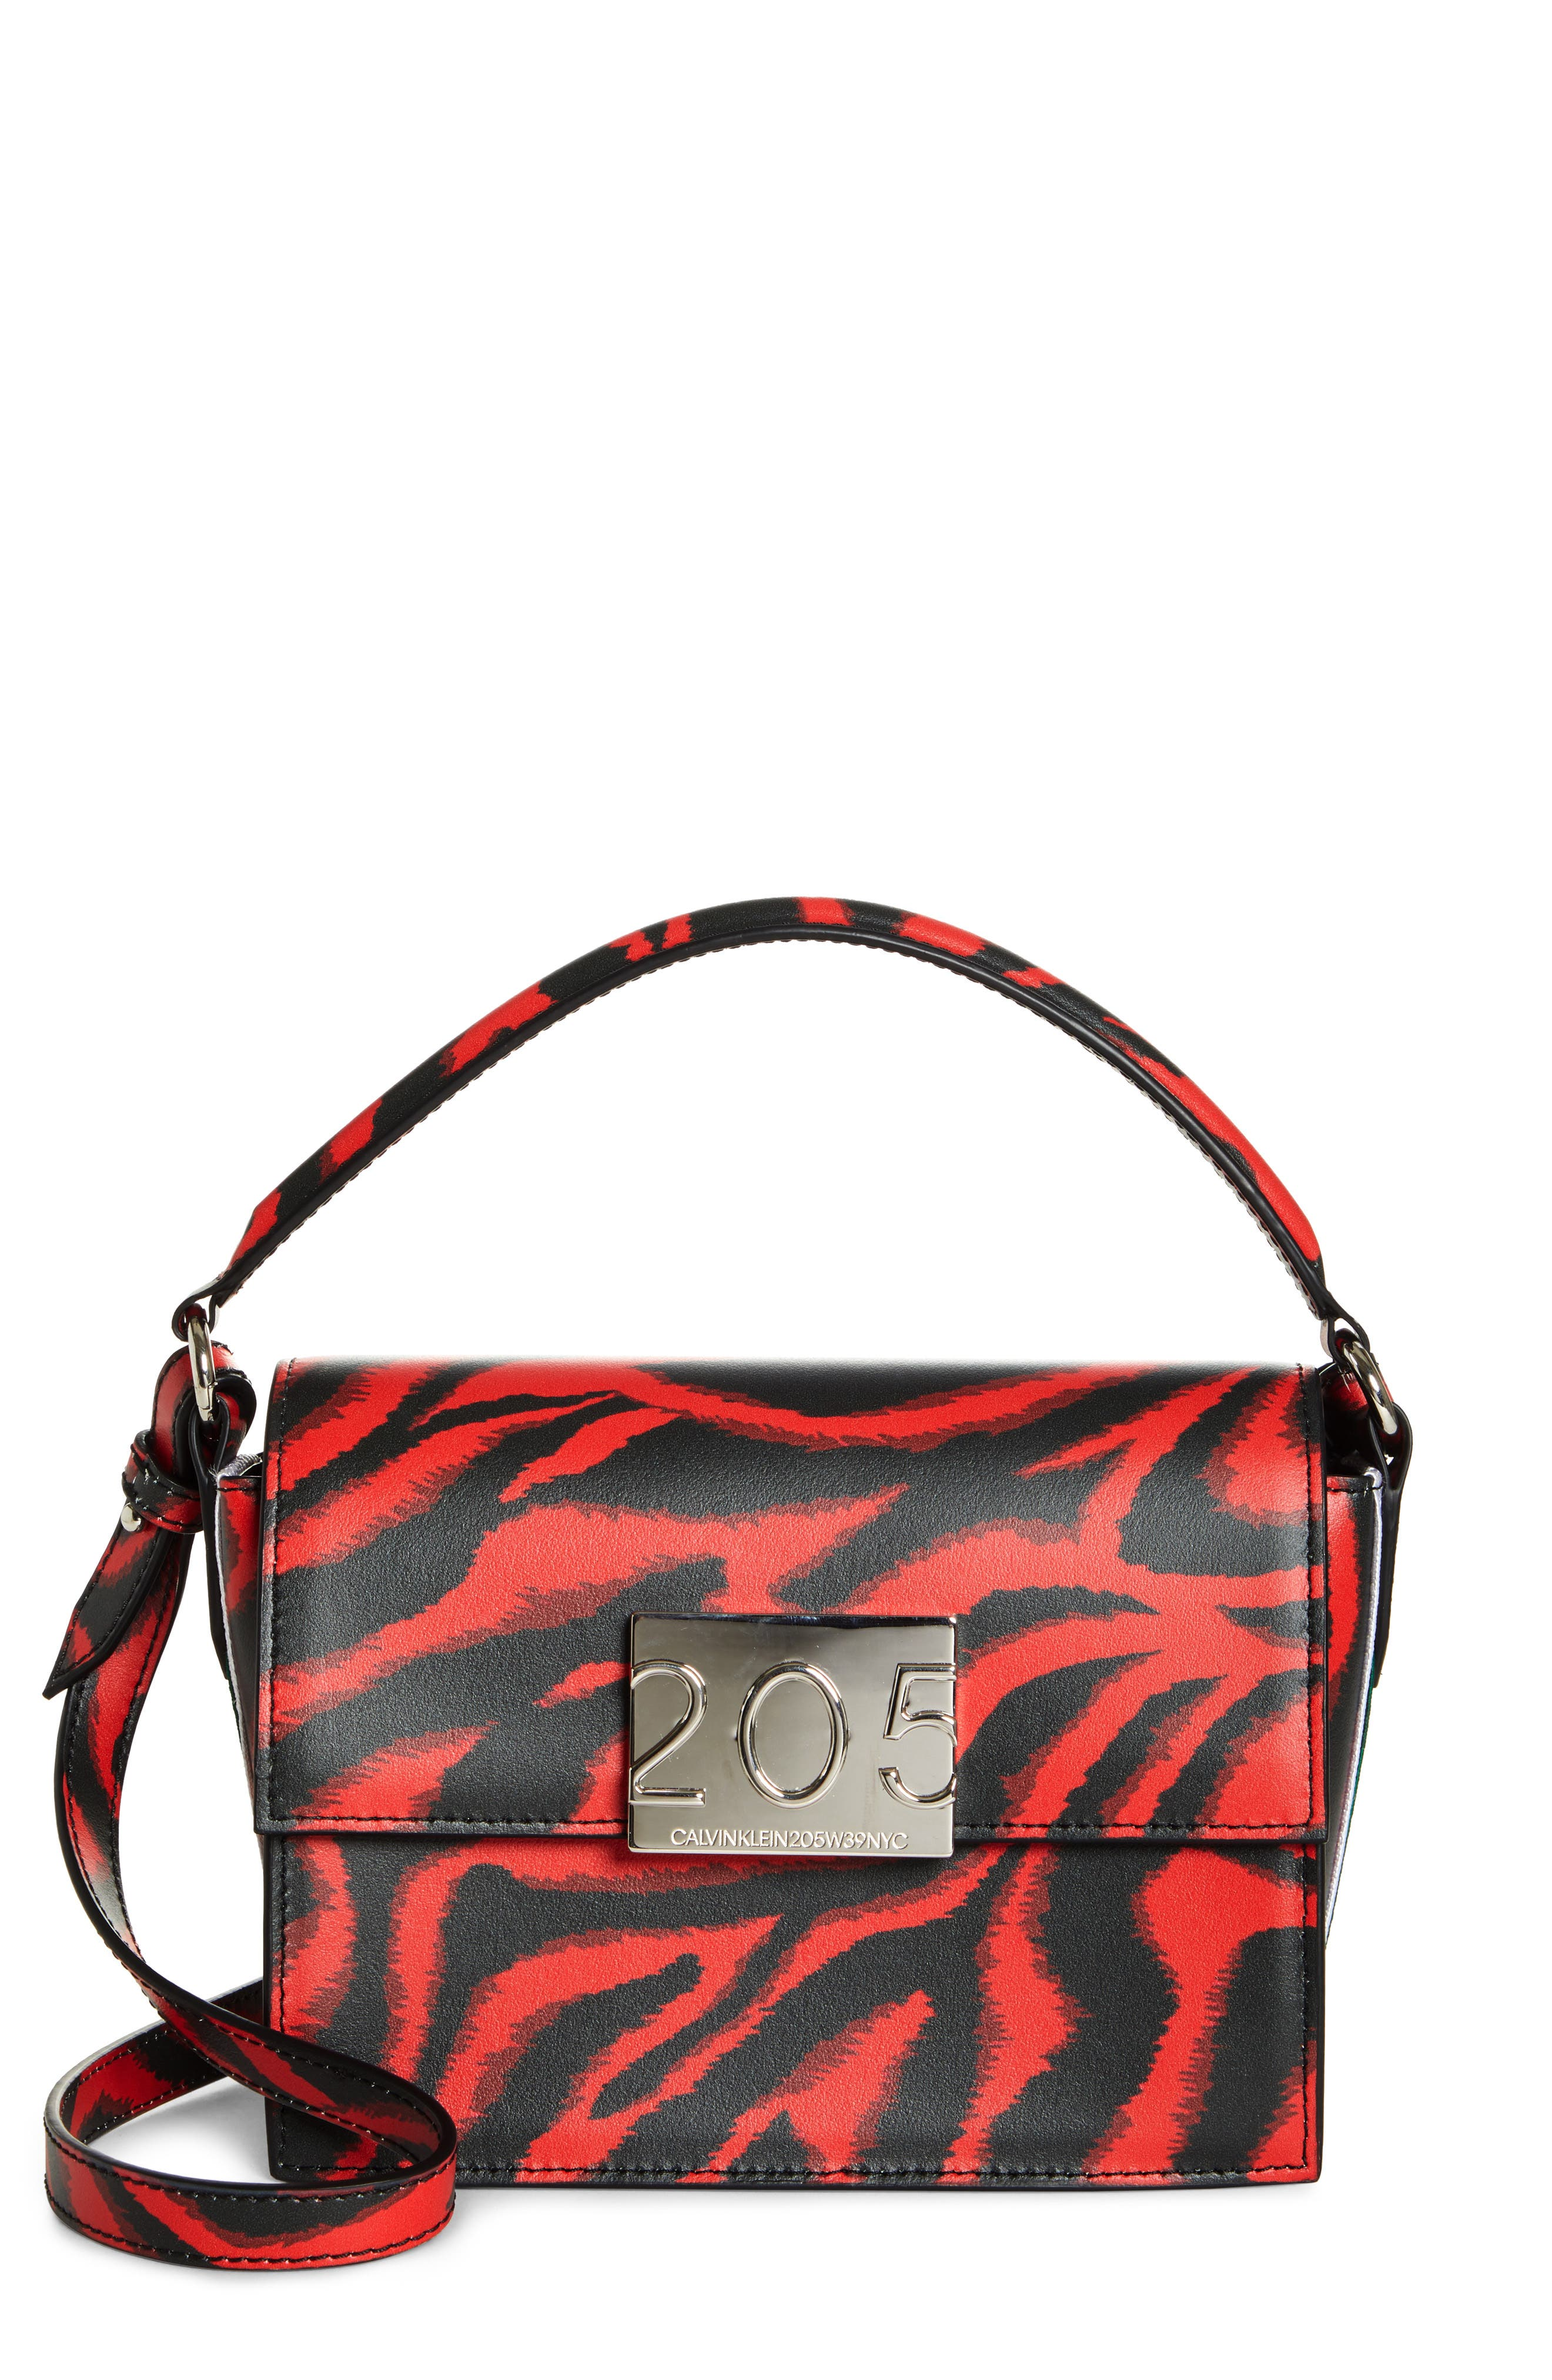 CALVIN KLEIN 205W39NYC, Small Bonnie Top Handle Calfskin Shoulder Bag, Main thumbnail 1, color, RED ZEBRA